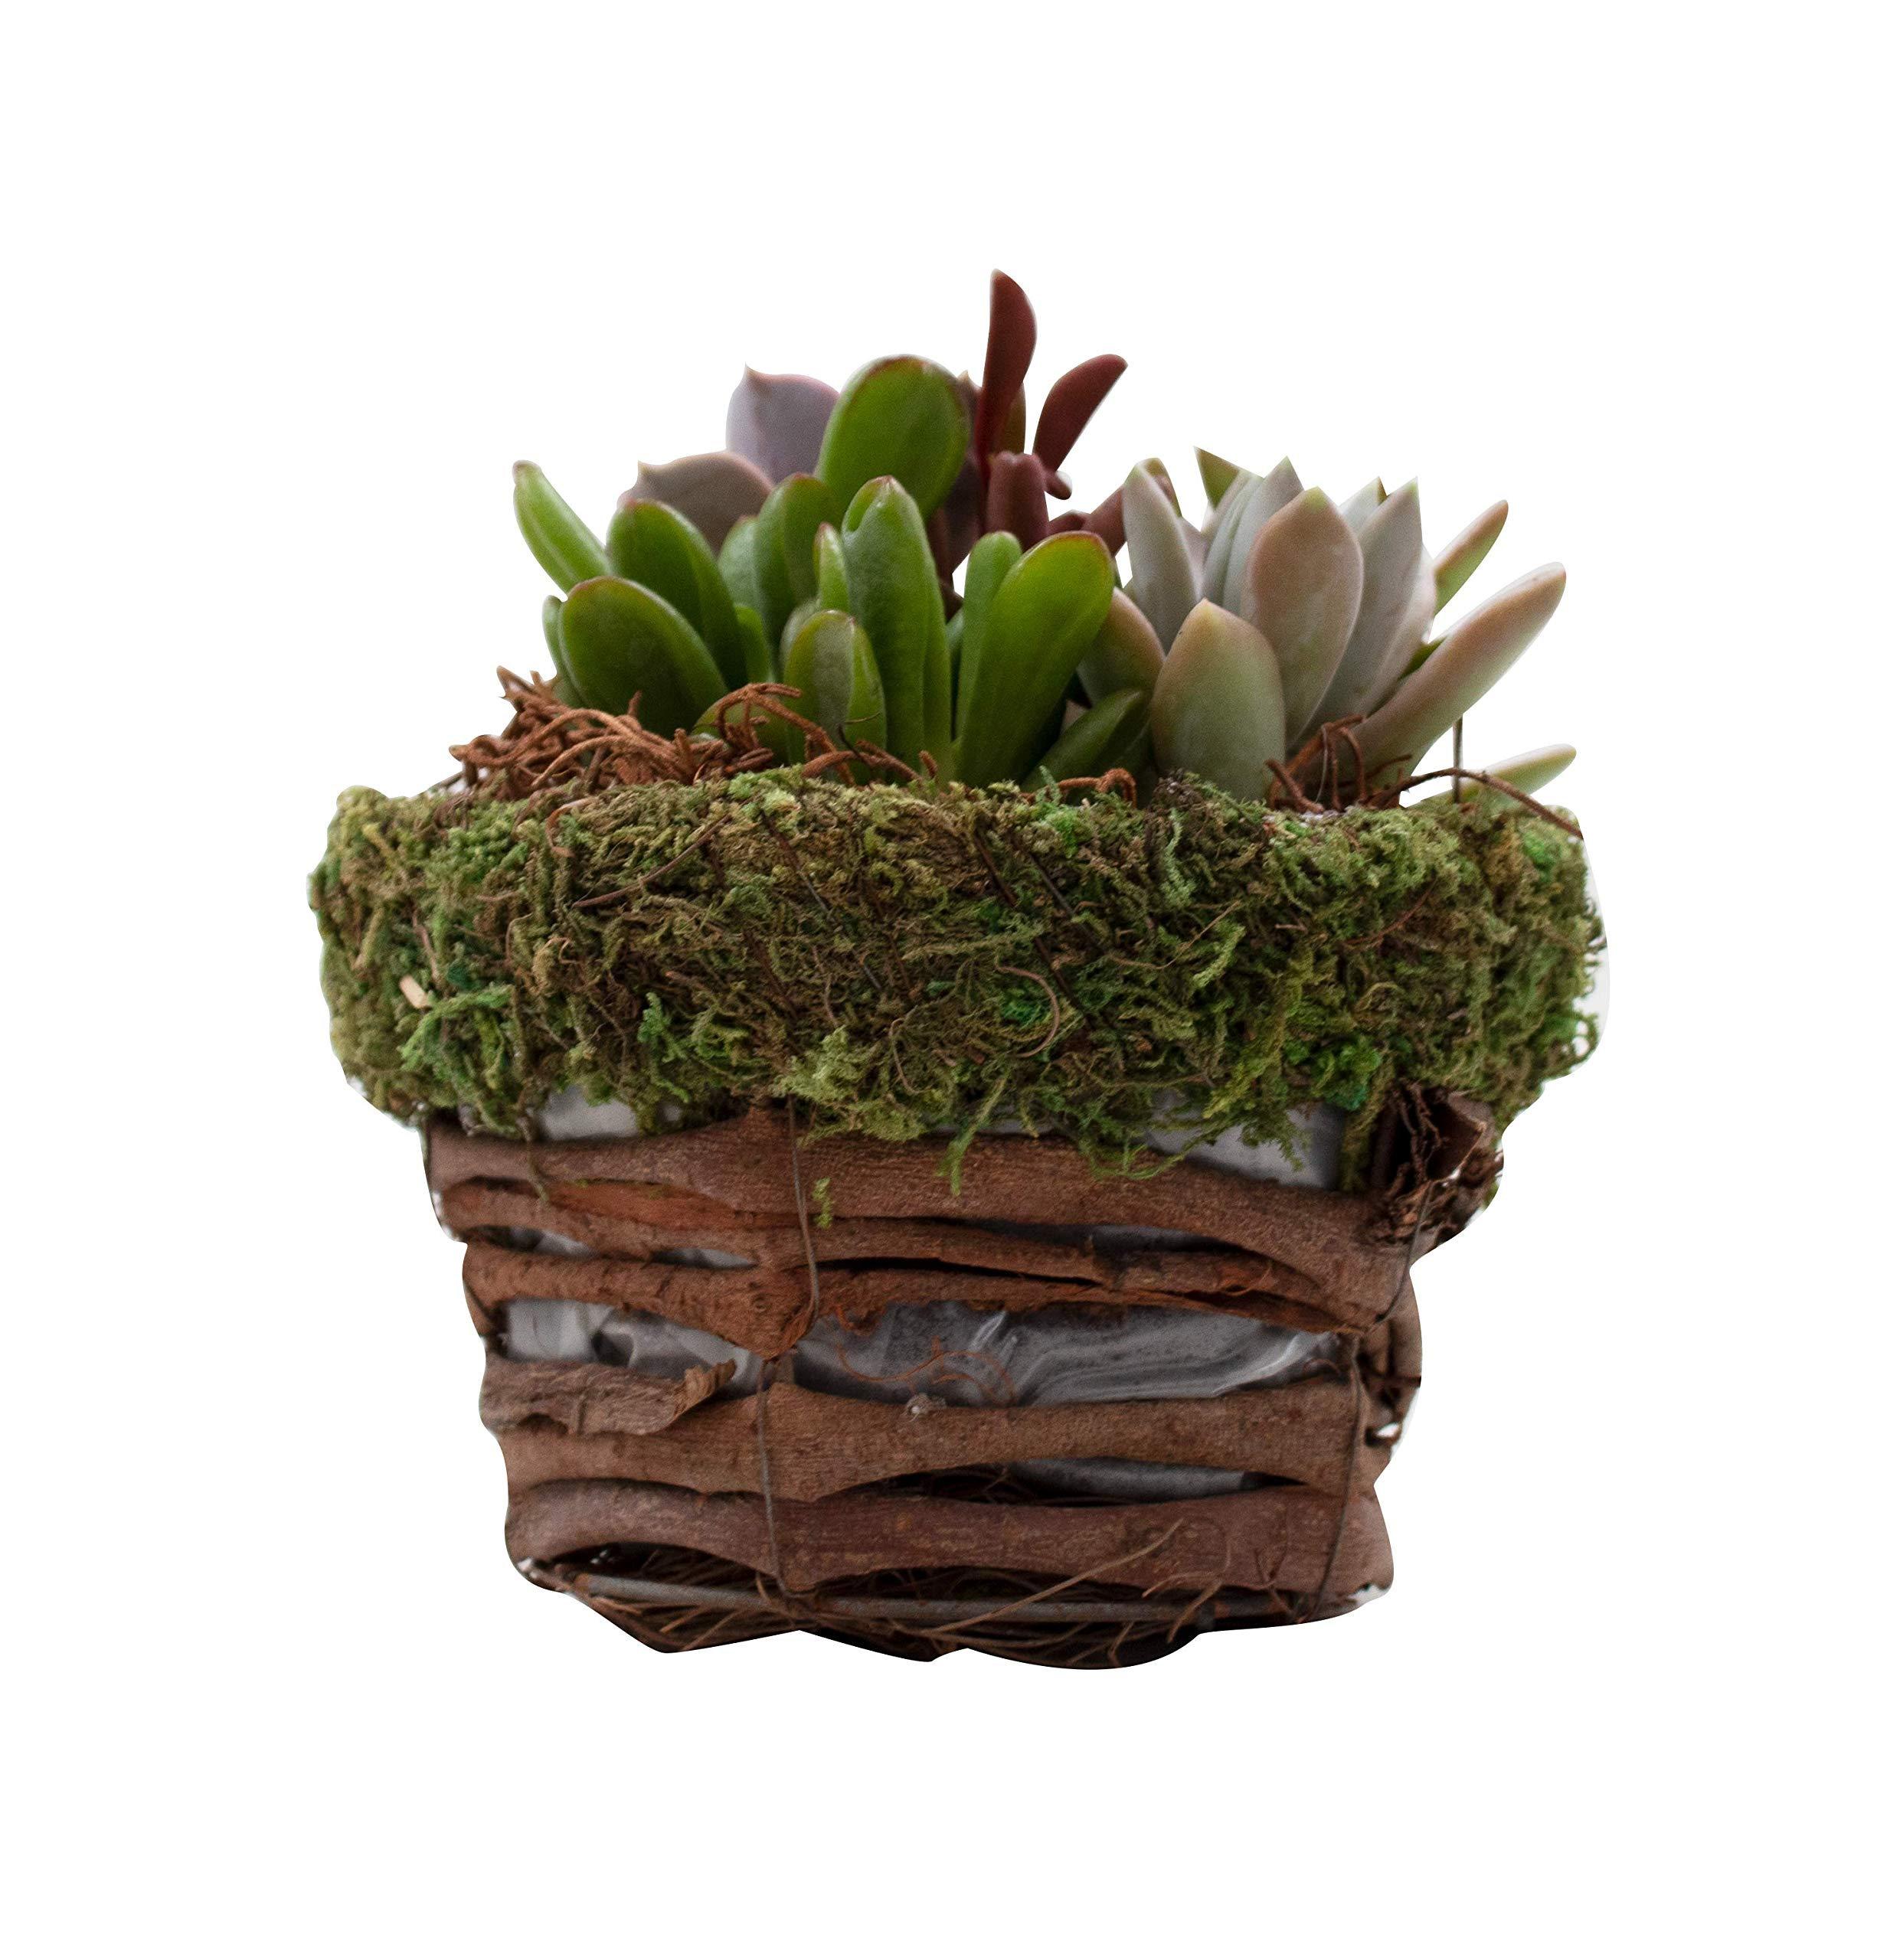 Hallmark Flowers Succulent Garden In 10-Inch Moss and Twig Container by Hallmark Flowers (Image #1)